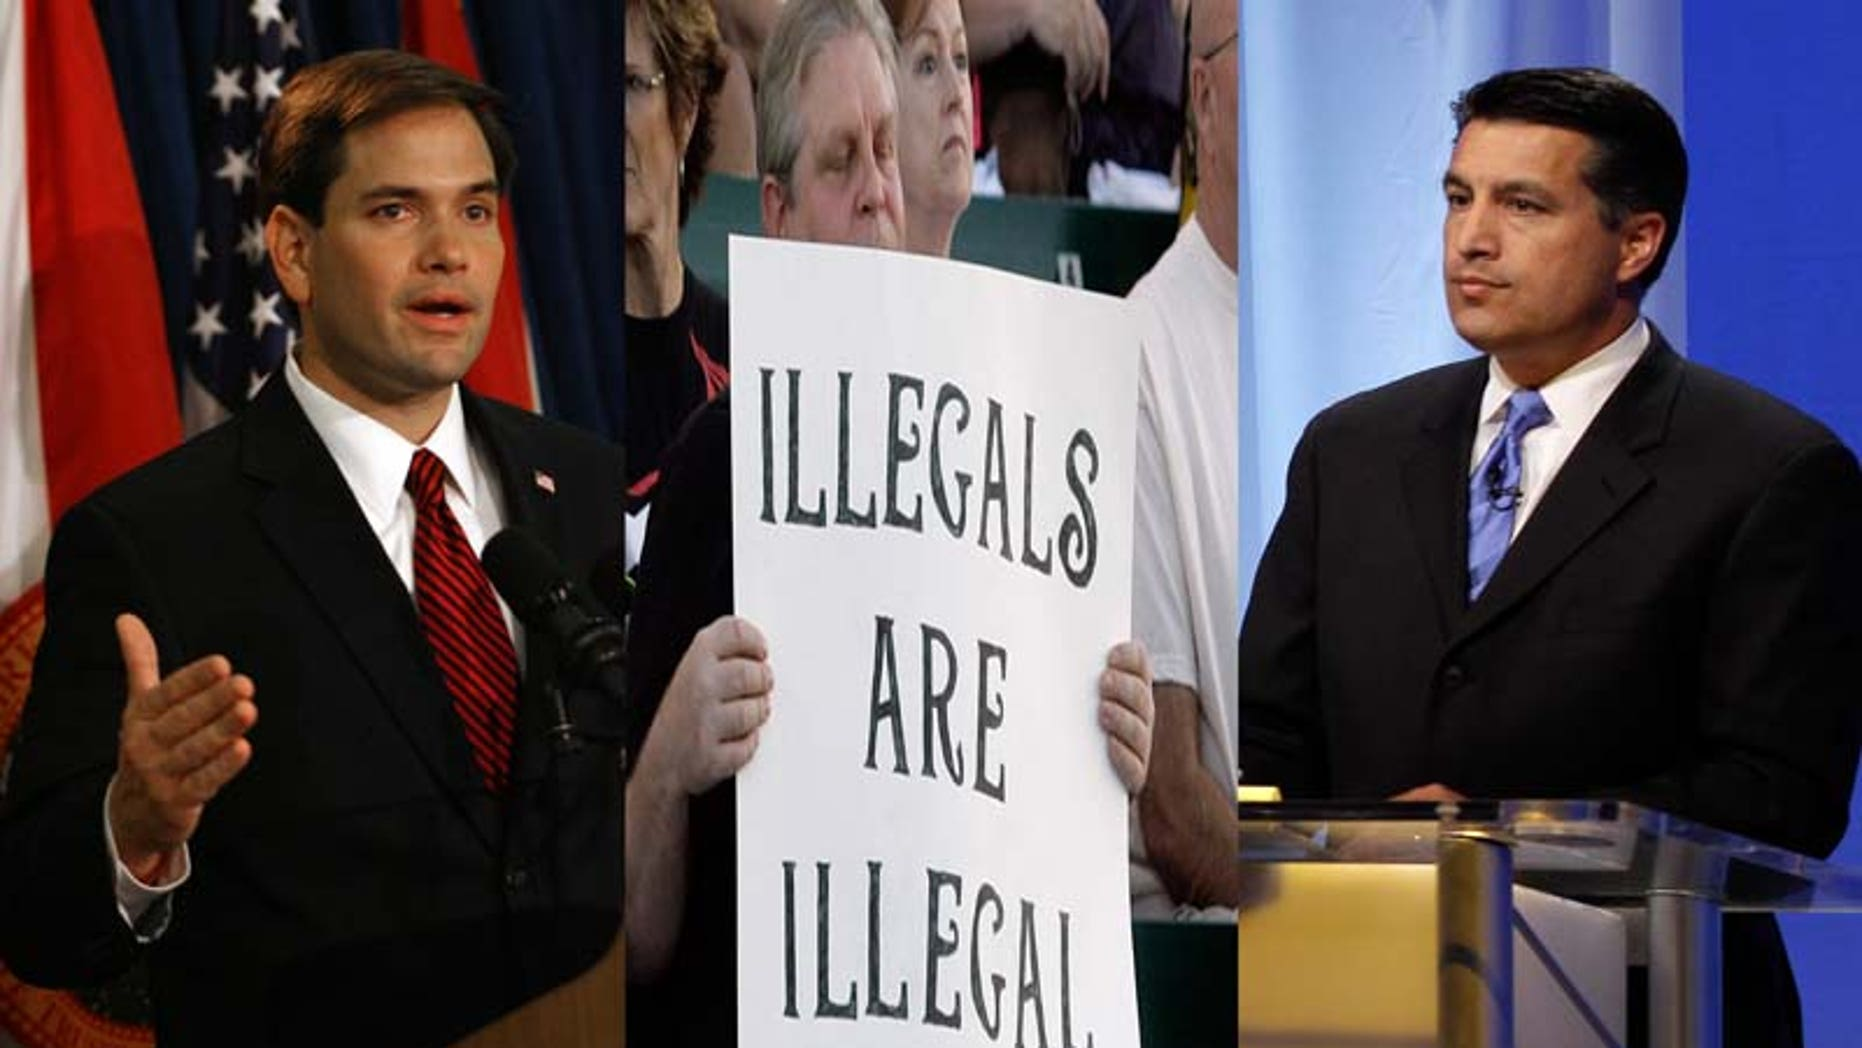 Florida Sen.-elect Republican Marco Rubio holds a press conference at the Biltmore Hotel in Coral Gables, Fla. Wednesday Nov. 3, 2010. Rubio defeated Charlie Crist and Kendrick Meek to retain the seat for the GOP.(AP Photo/Jeffrey M. Boan)